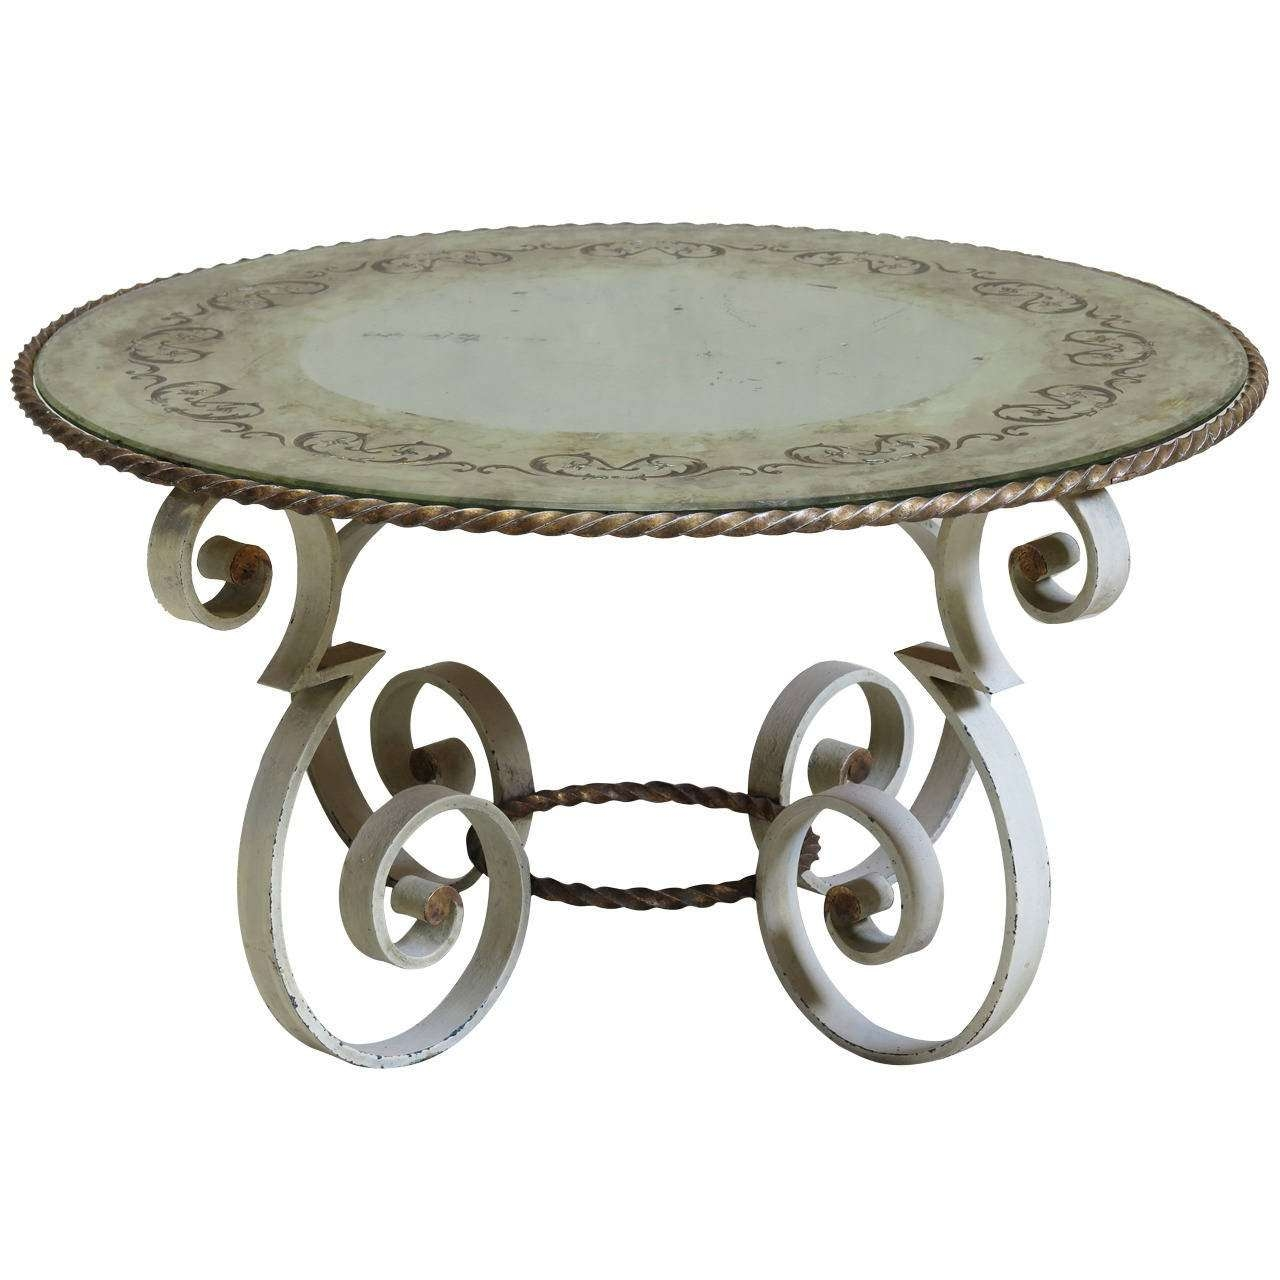 2018 Wrought Iron Coffee Tables Regarding Wrought Iron Coffee Table With Eglomisé Mirror Top, France 1940S (View 1 of 20)